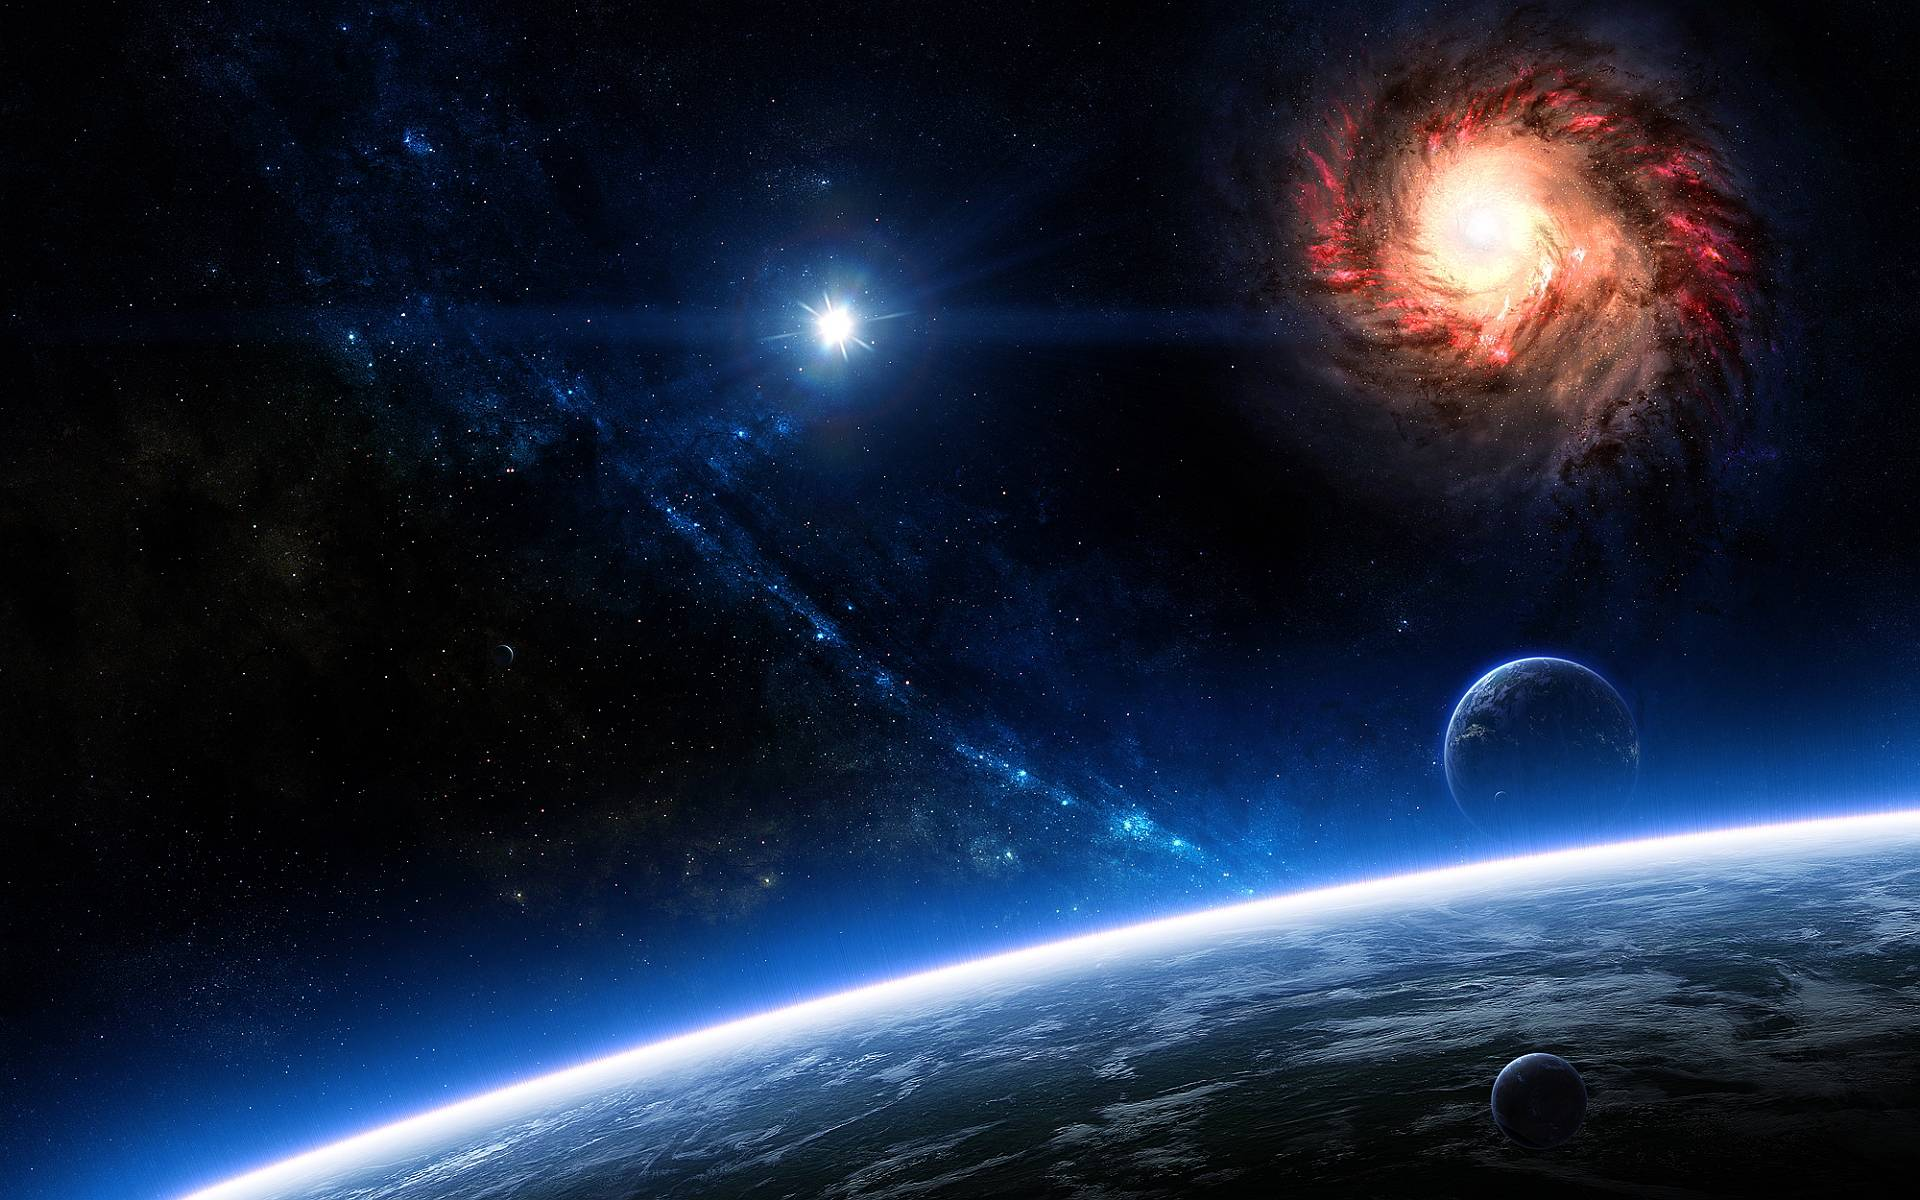 wallpaper space planet the - photo #8